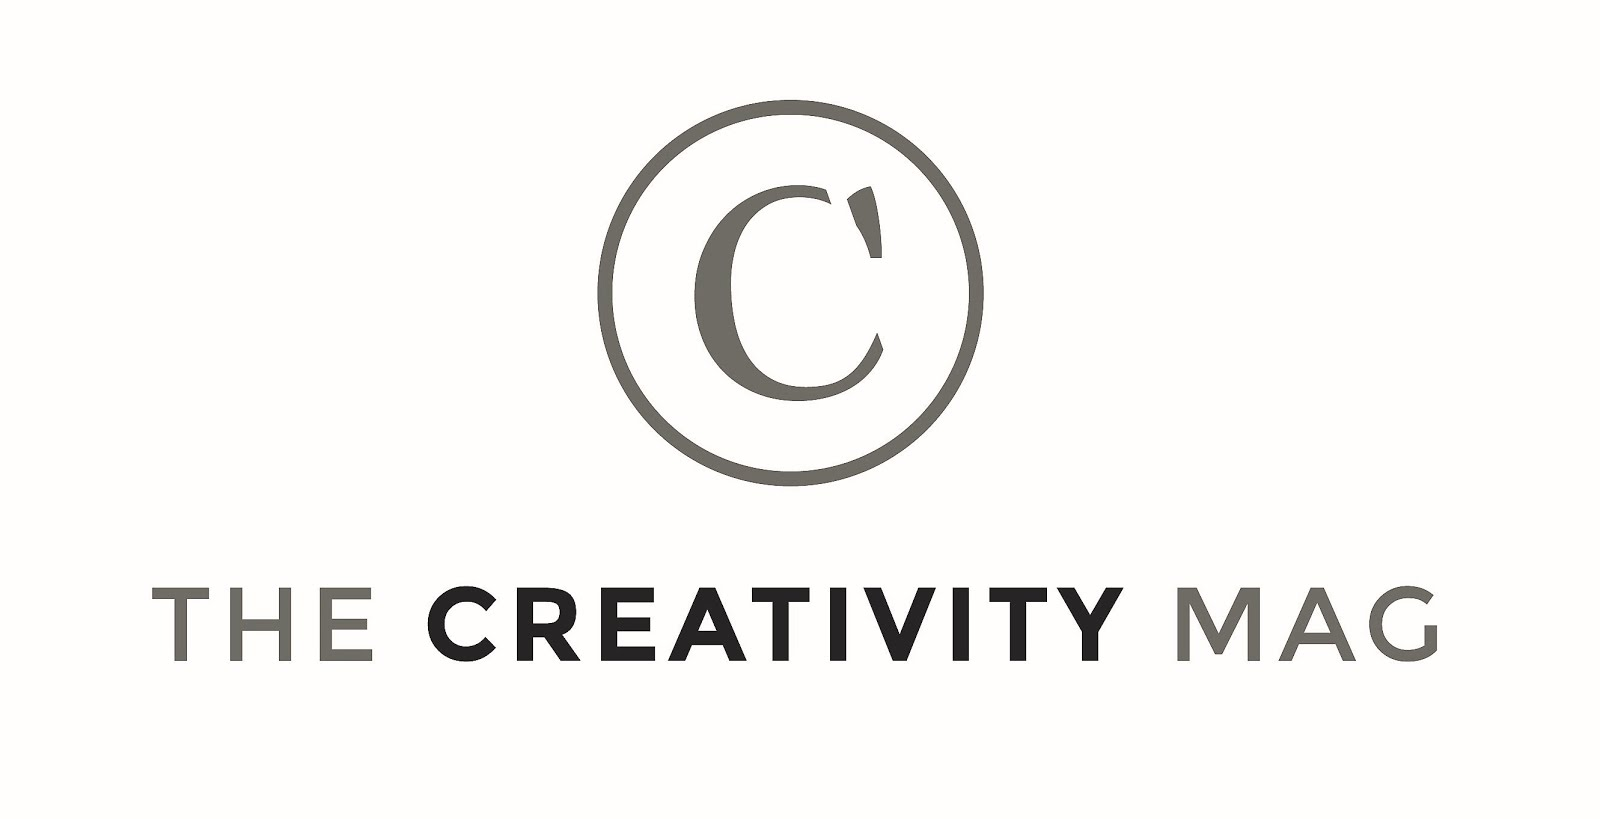 THE CREATIVITY MAG